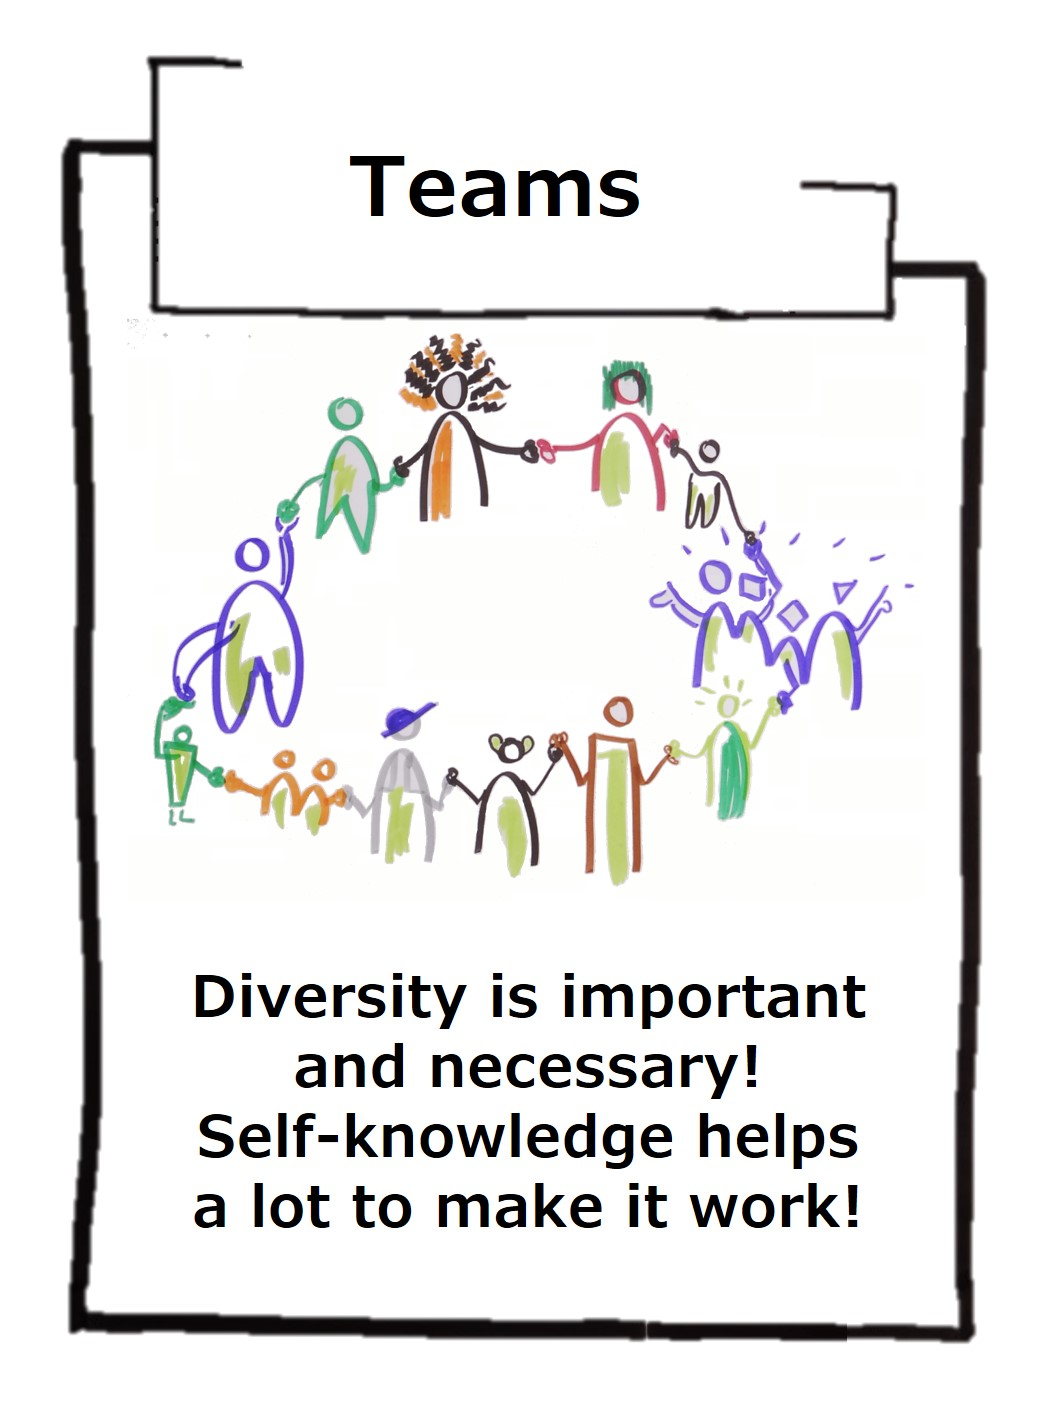 Teams or teamwork are often mispriced. We have to promote individuality as well as cooperation - the balance has to be right!